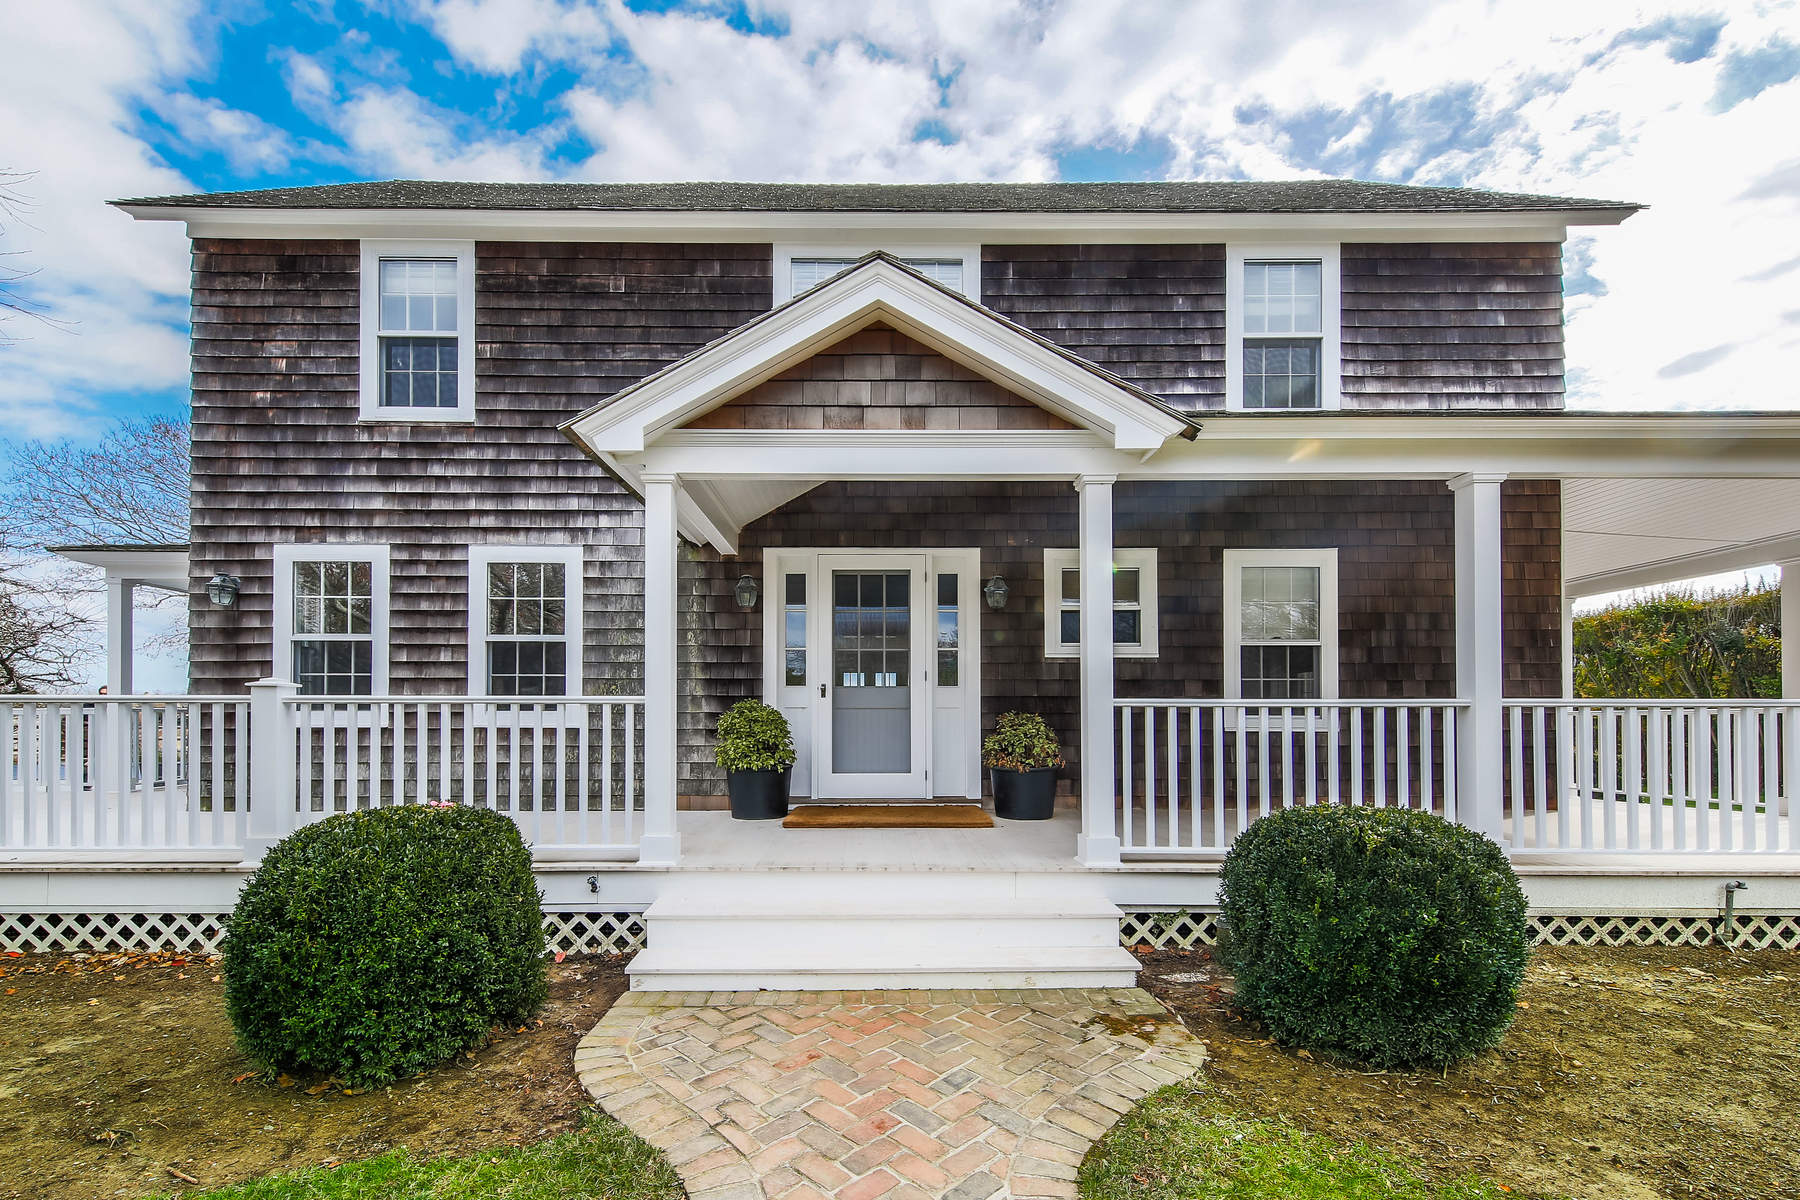 Additional photo for property listing at Renovated Traditional 125 Apaquogue Road East Hampton, New York 11937 United States